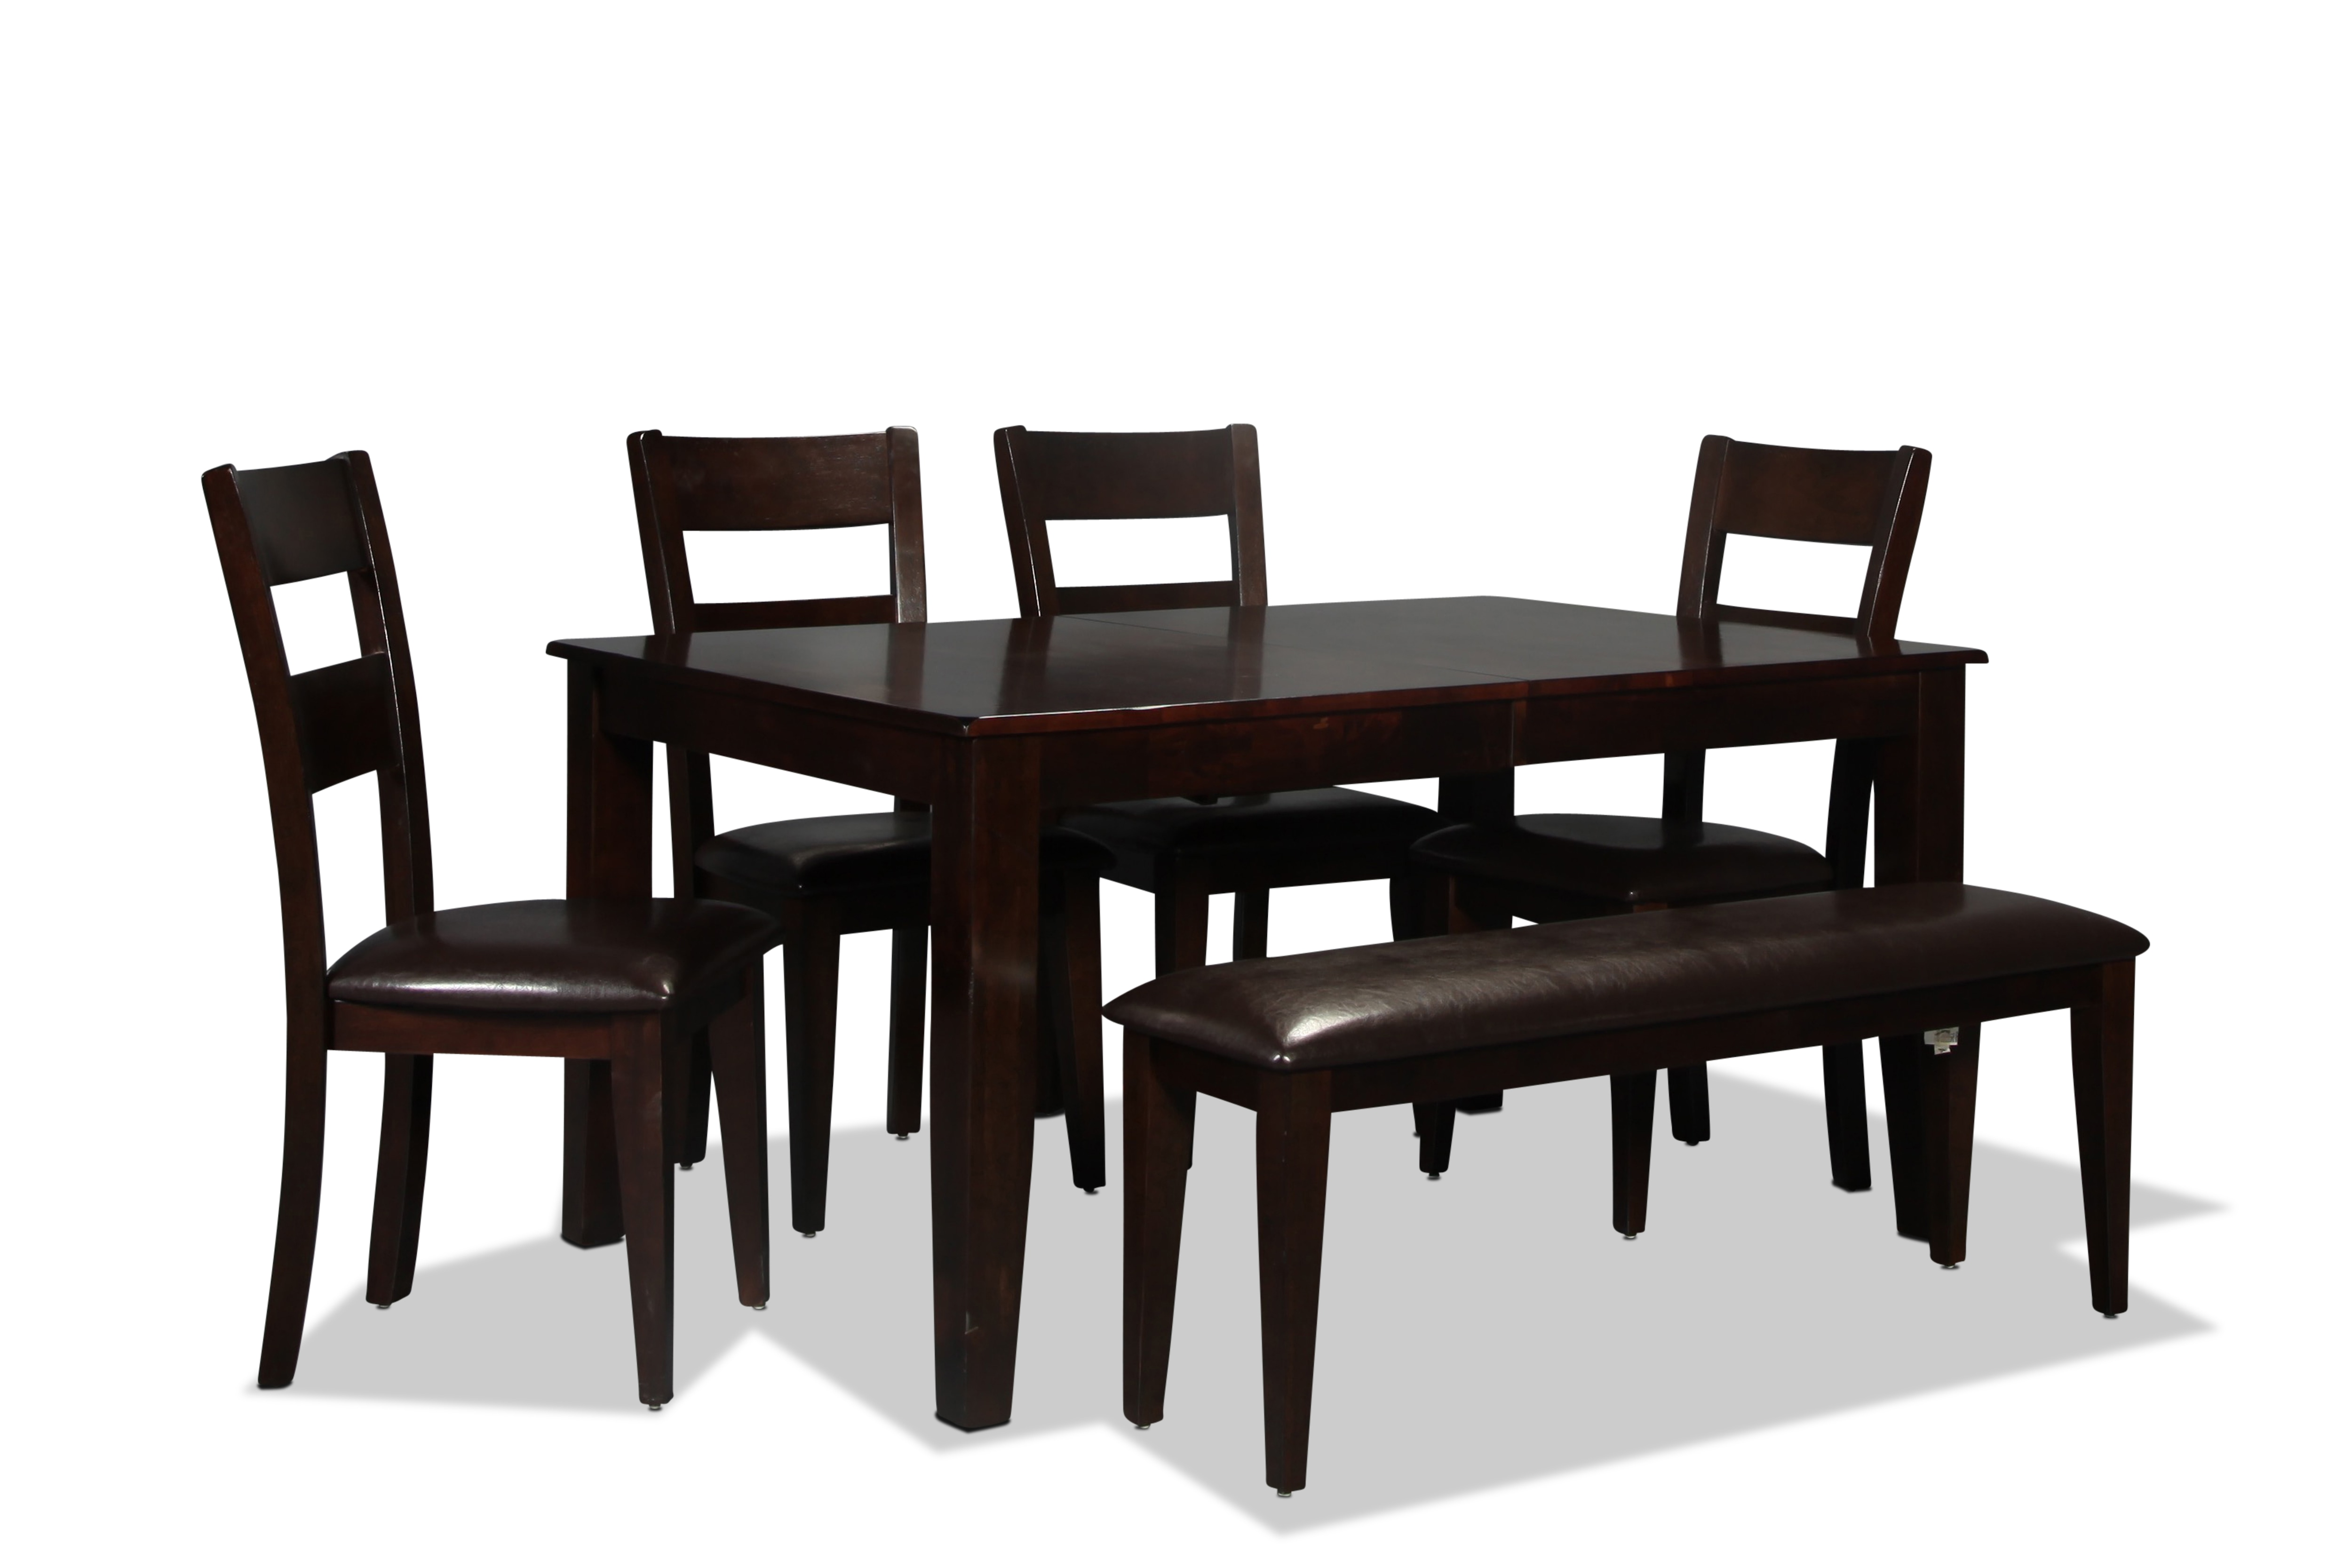 Urban View Table and 4 Side Chairs - Dark Cherry